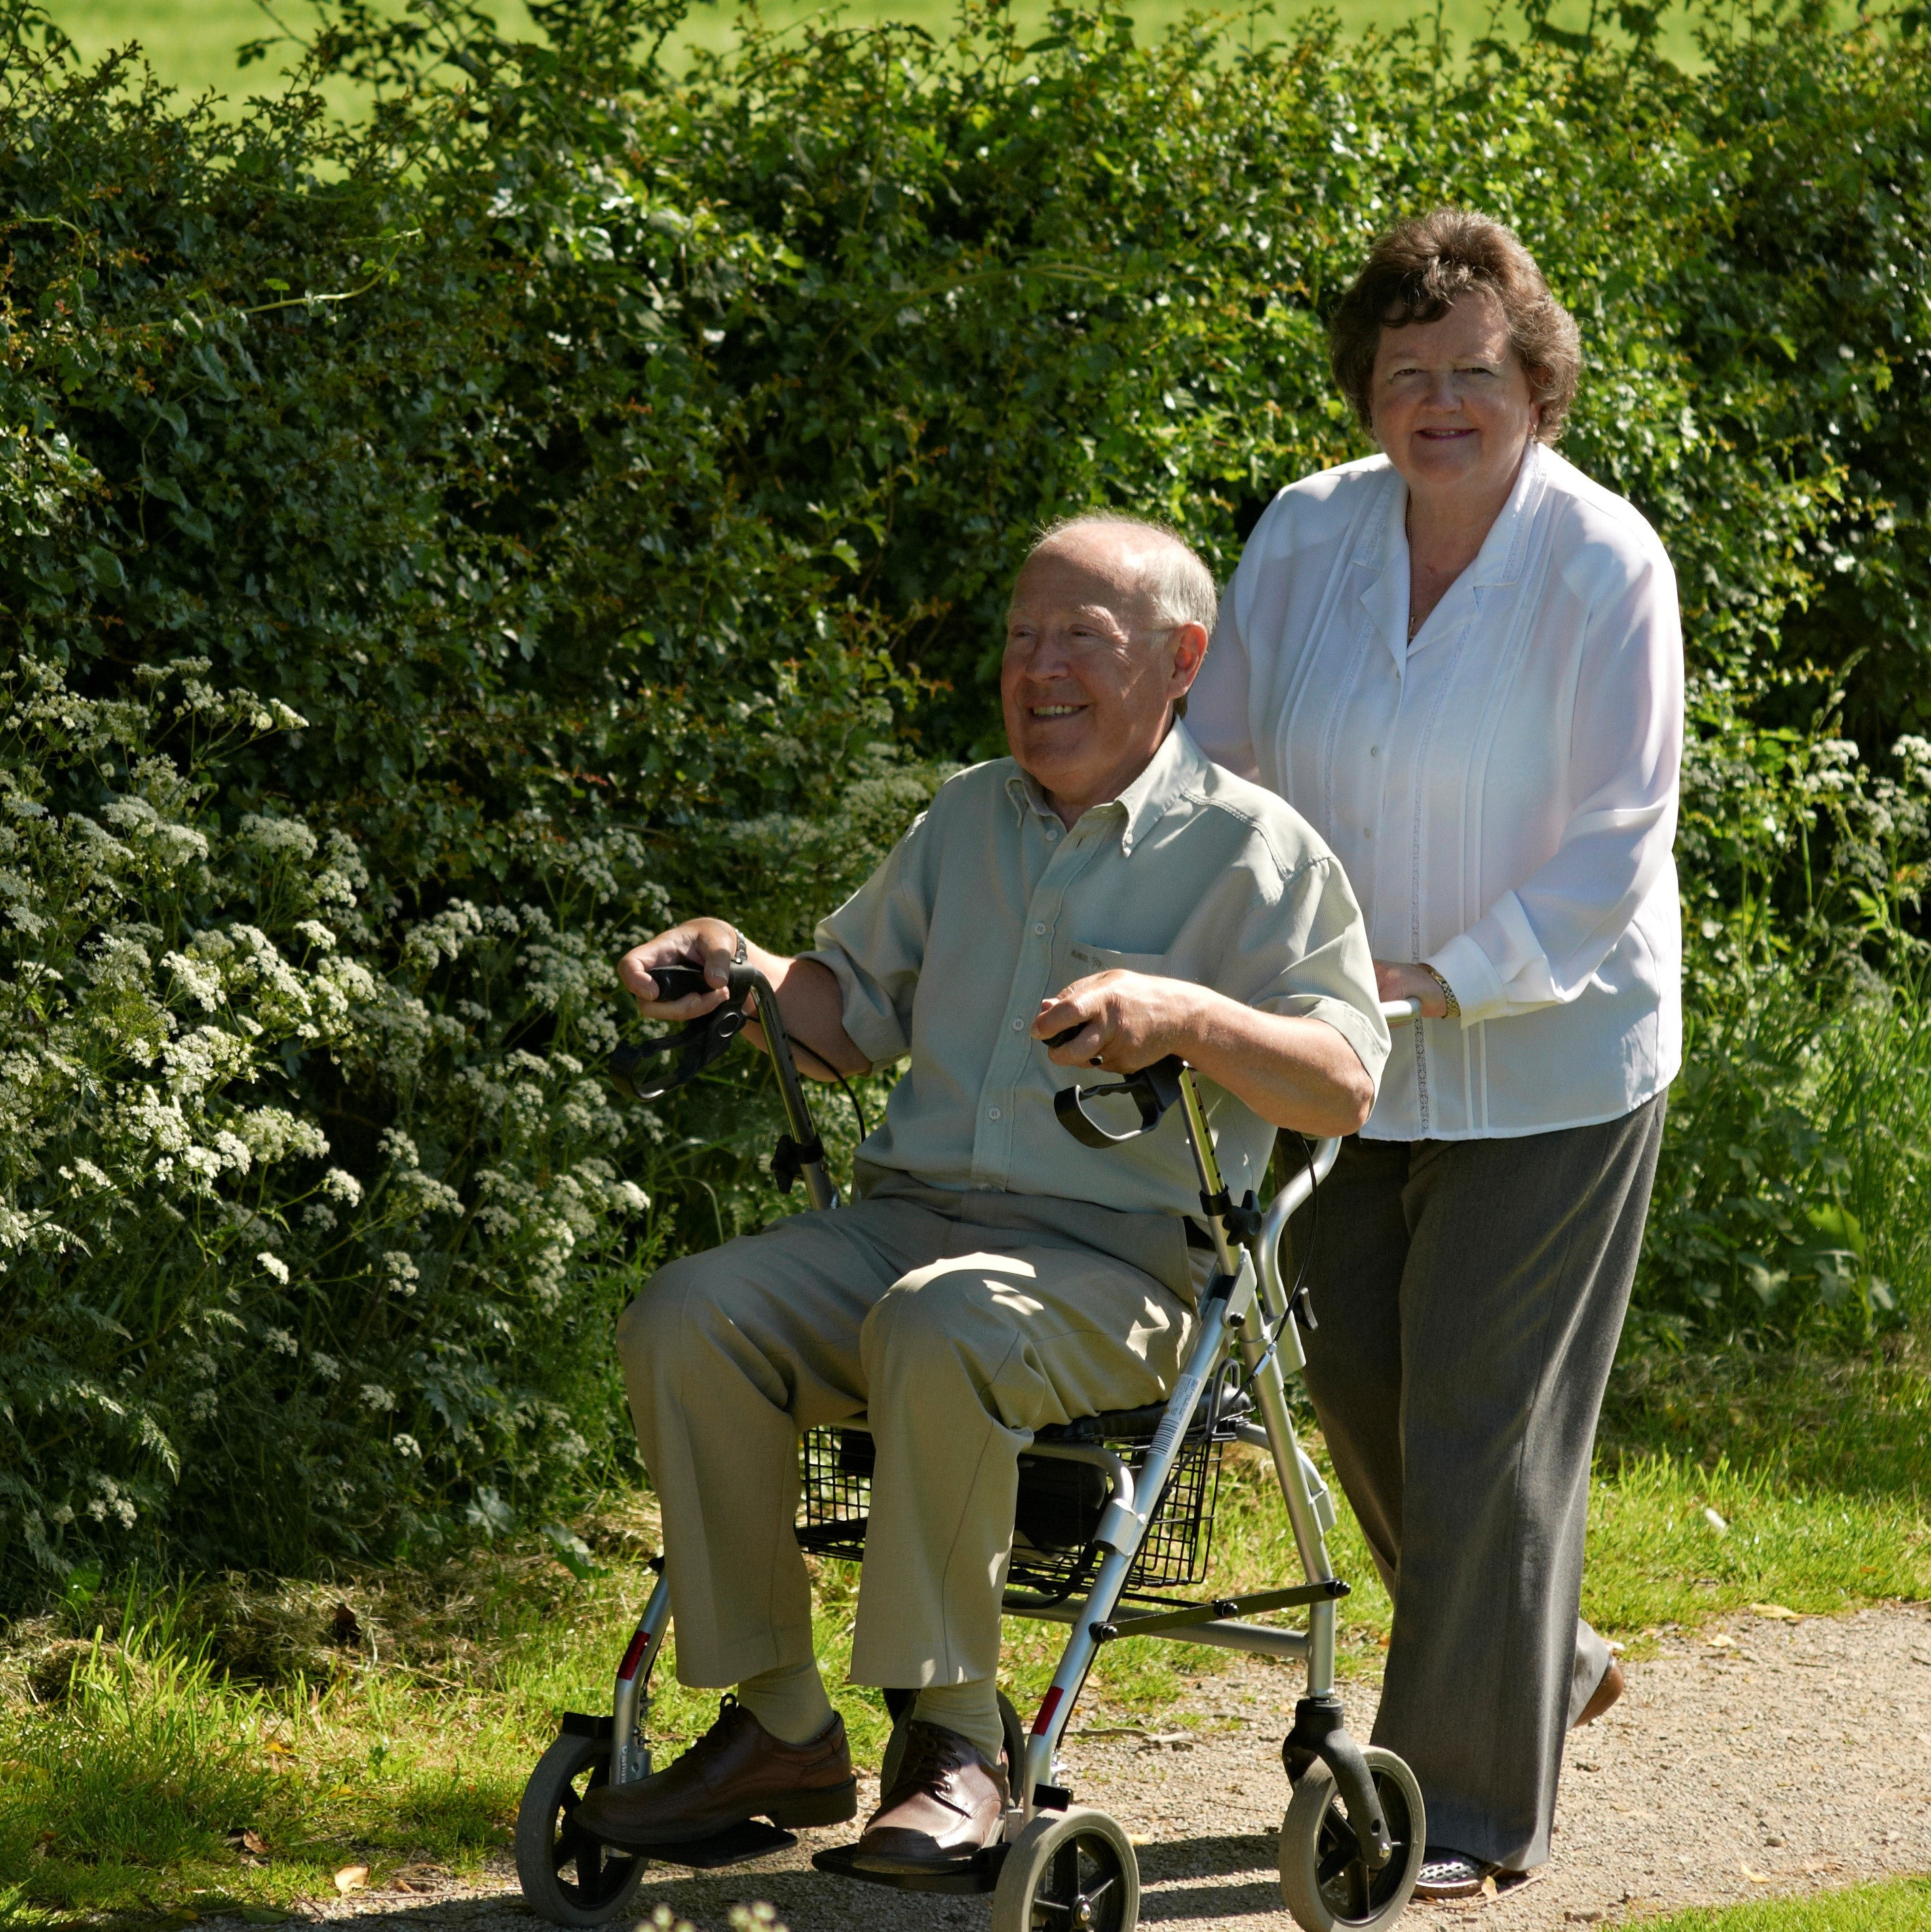 Two individuals walking outside, one sat on a rollator and the other pushing it.